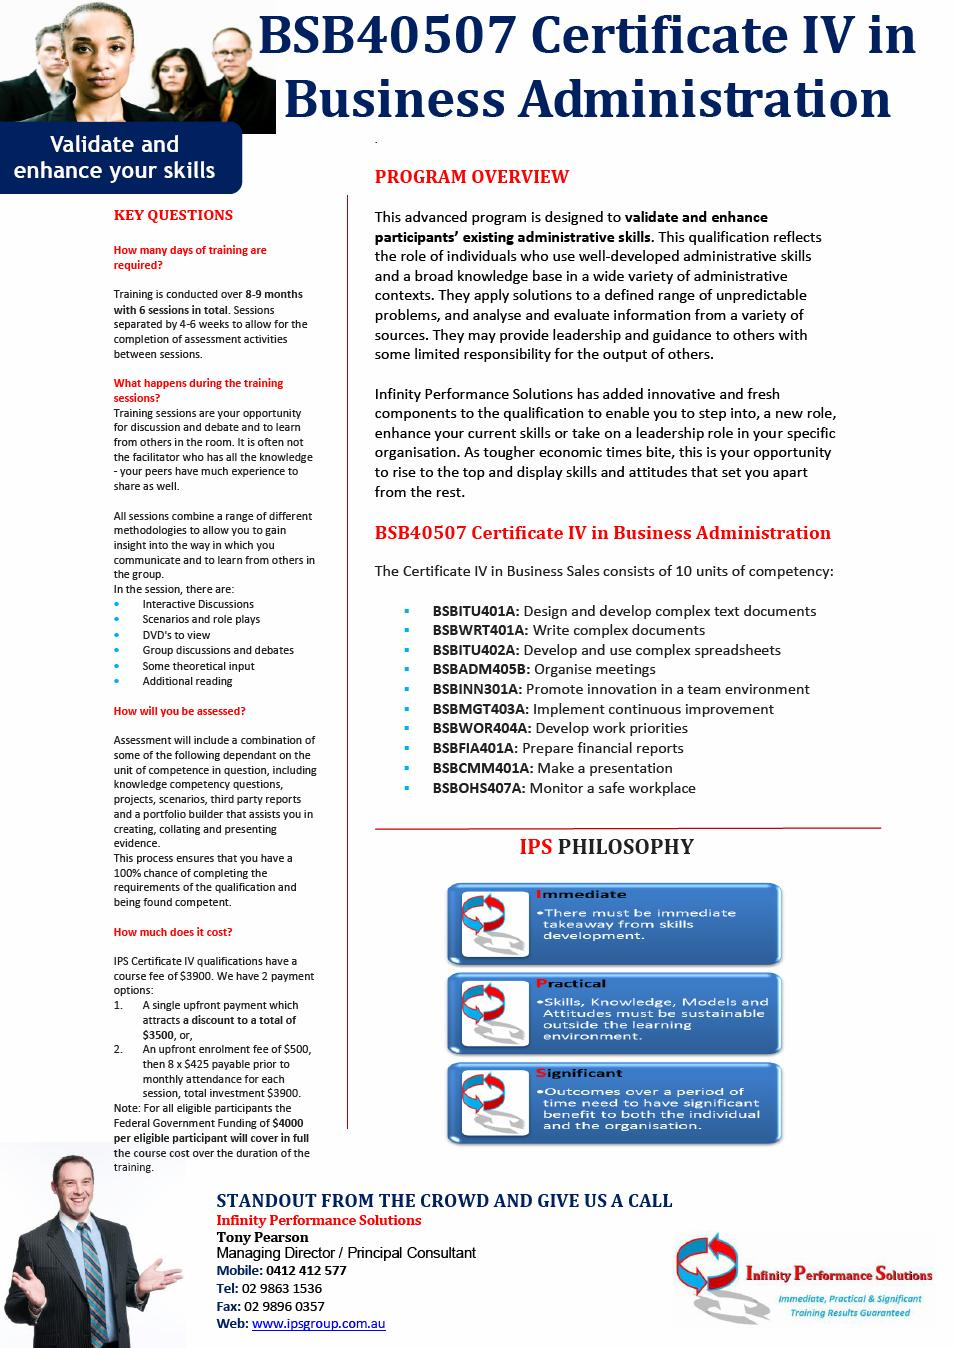 Infinity Performance Solutions BSB40507 Certificate IV in Business